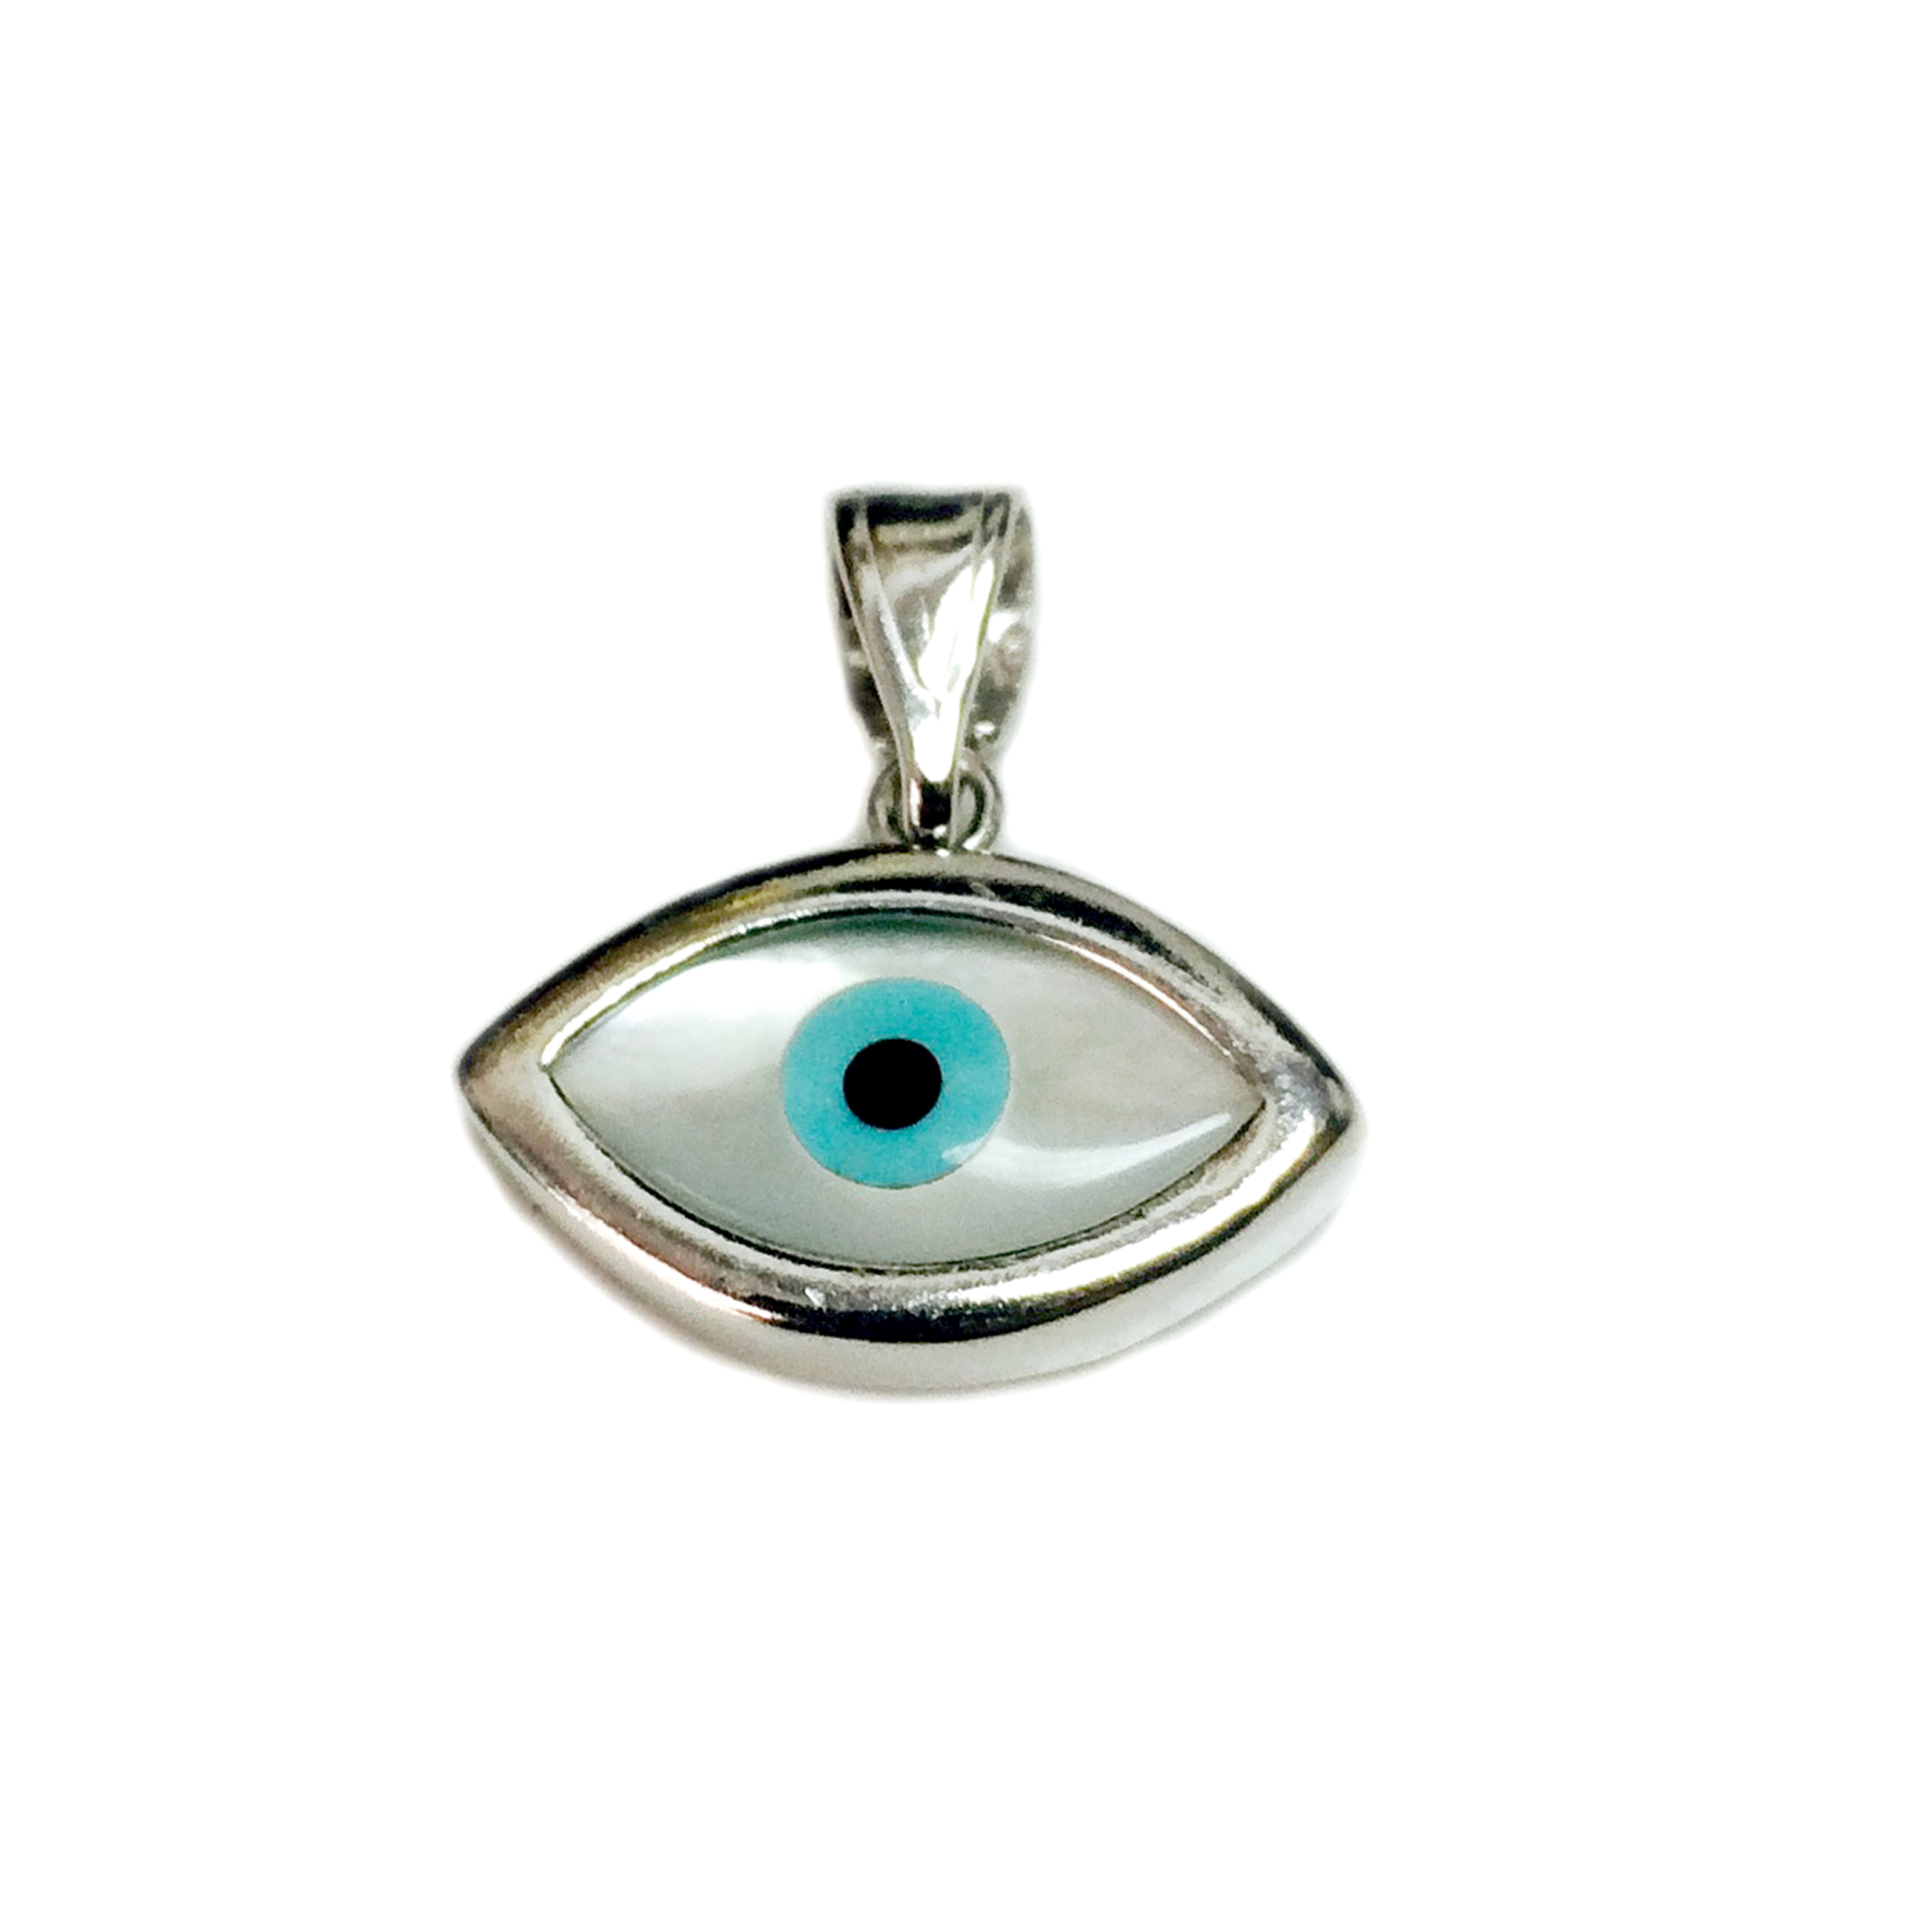 Sterling Silver Evil Eye Pendant Charm, 23 x 13mm Inspired from the of Greek ancient jewelry era, this sterling silver charm features the Evil Eye motif, also known as  Mati  in Greek , bordering a beautiful  glass Evil Eye. Measuring at 23x13 mm diameter, this Greek evil eye is rhodium plated for better tarnish resistance.